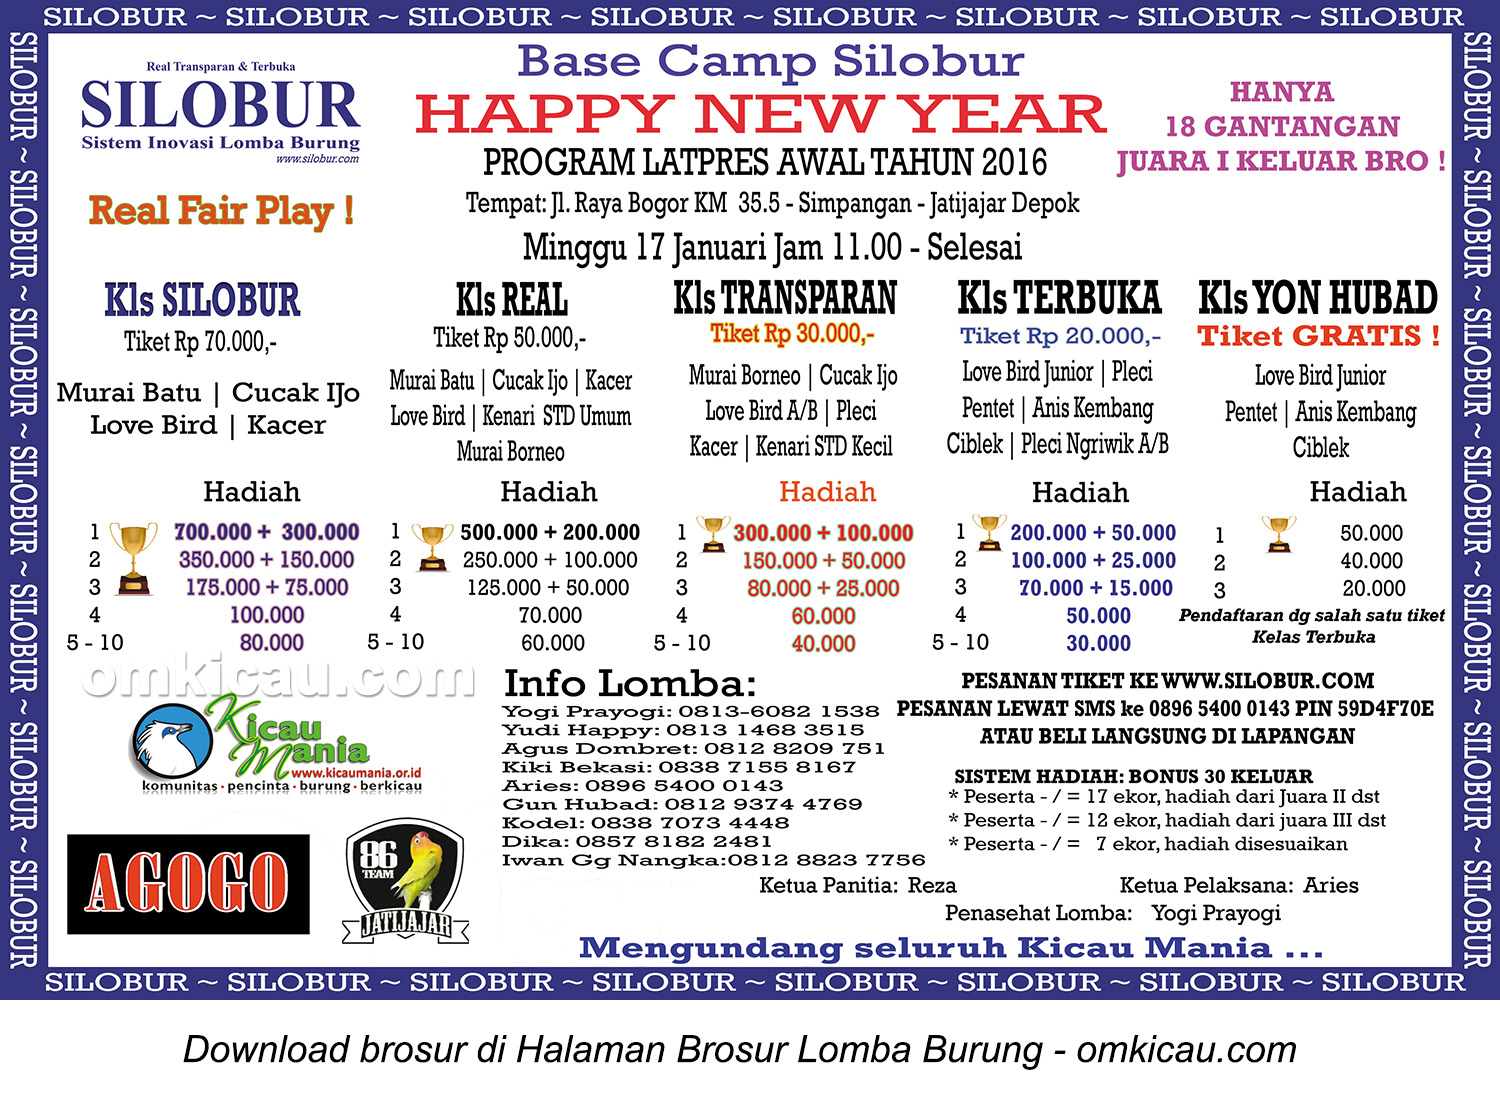 Brosur Latpres Base Camp Silobur Happy New Year, Depok, 17 Januari 2016